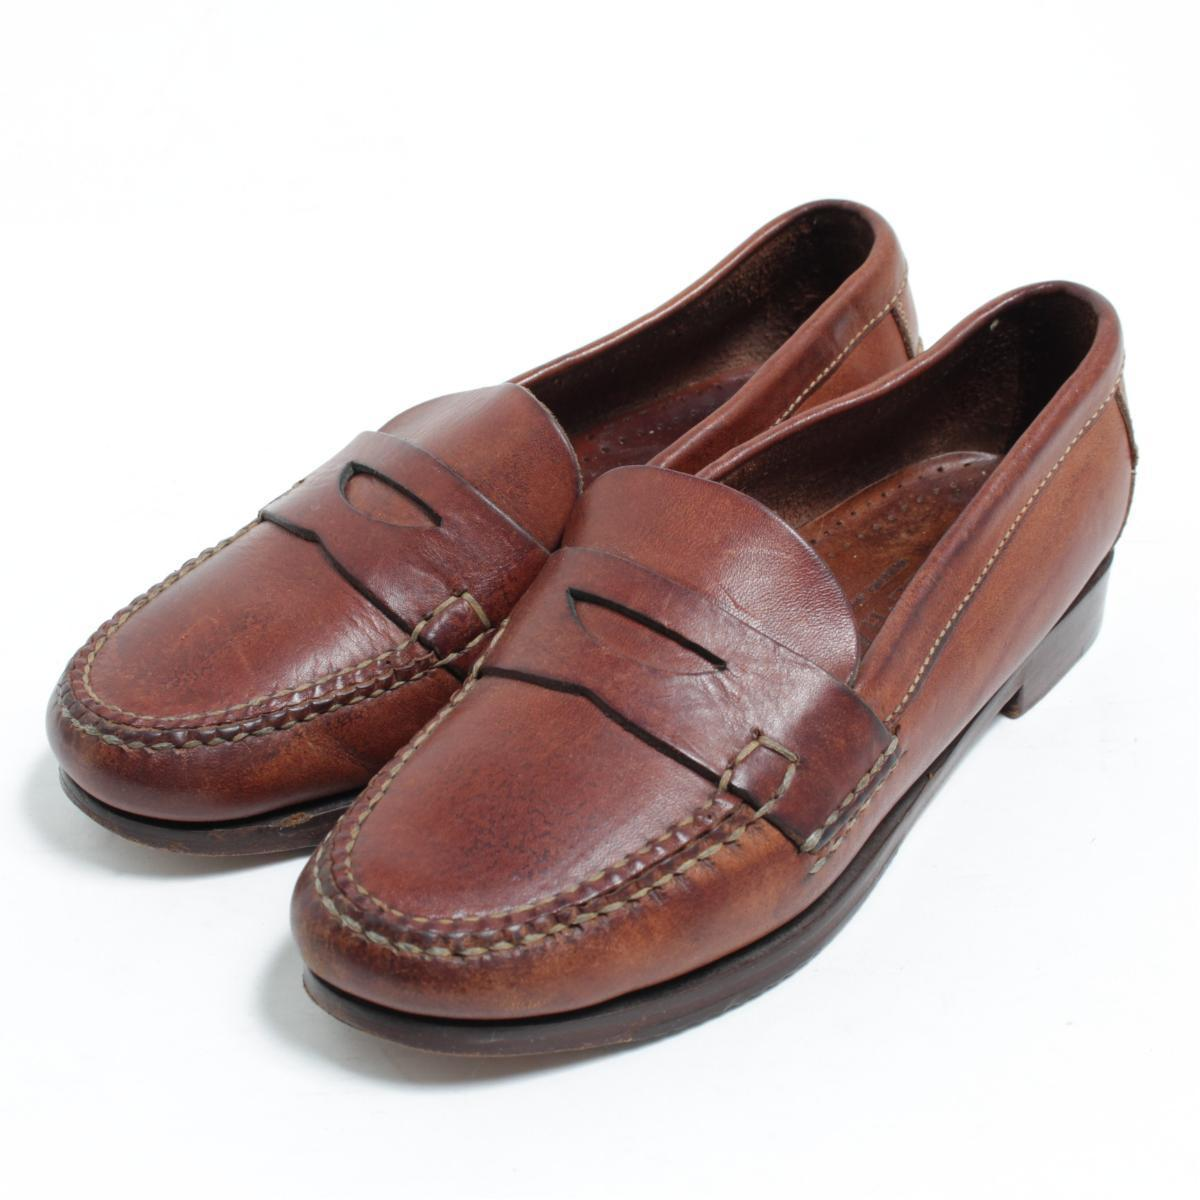 5ceacb04fc7 VINTAGE CLOTHING JAM  Cole Haan COLEHAAN penny loafers 6M Lady s ...